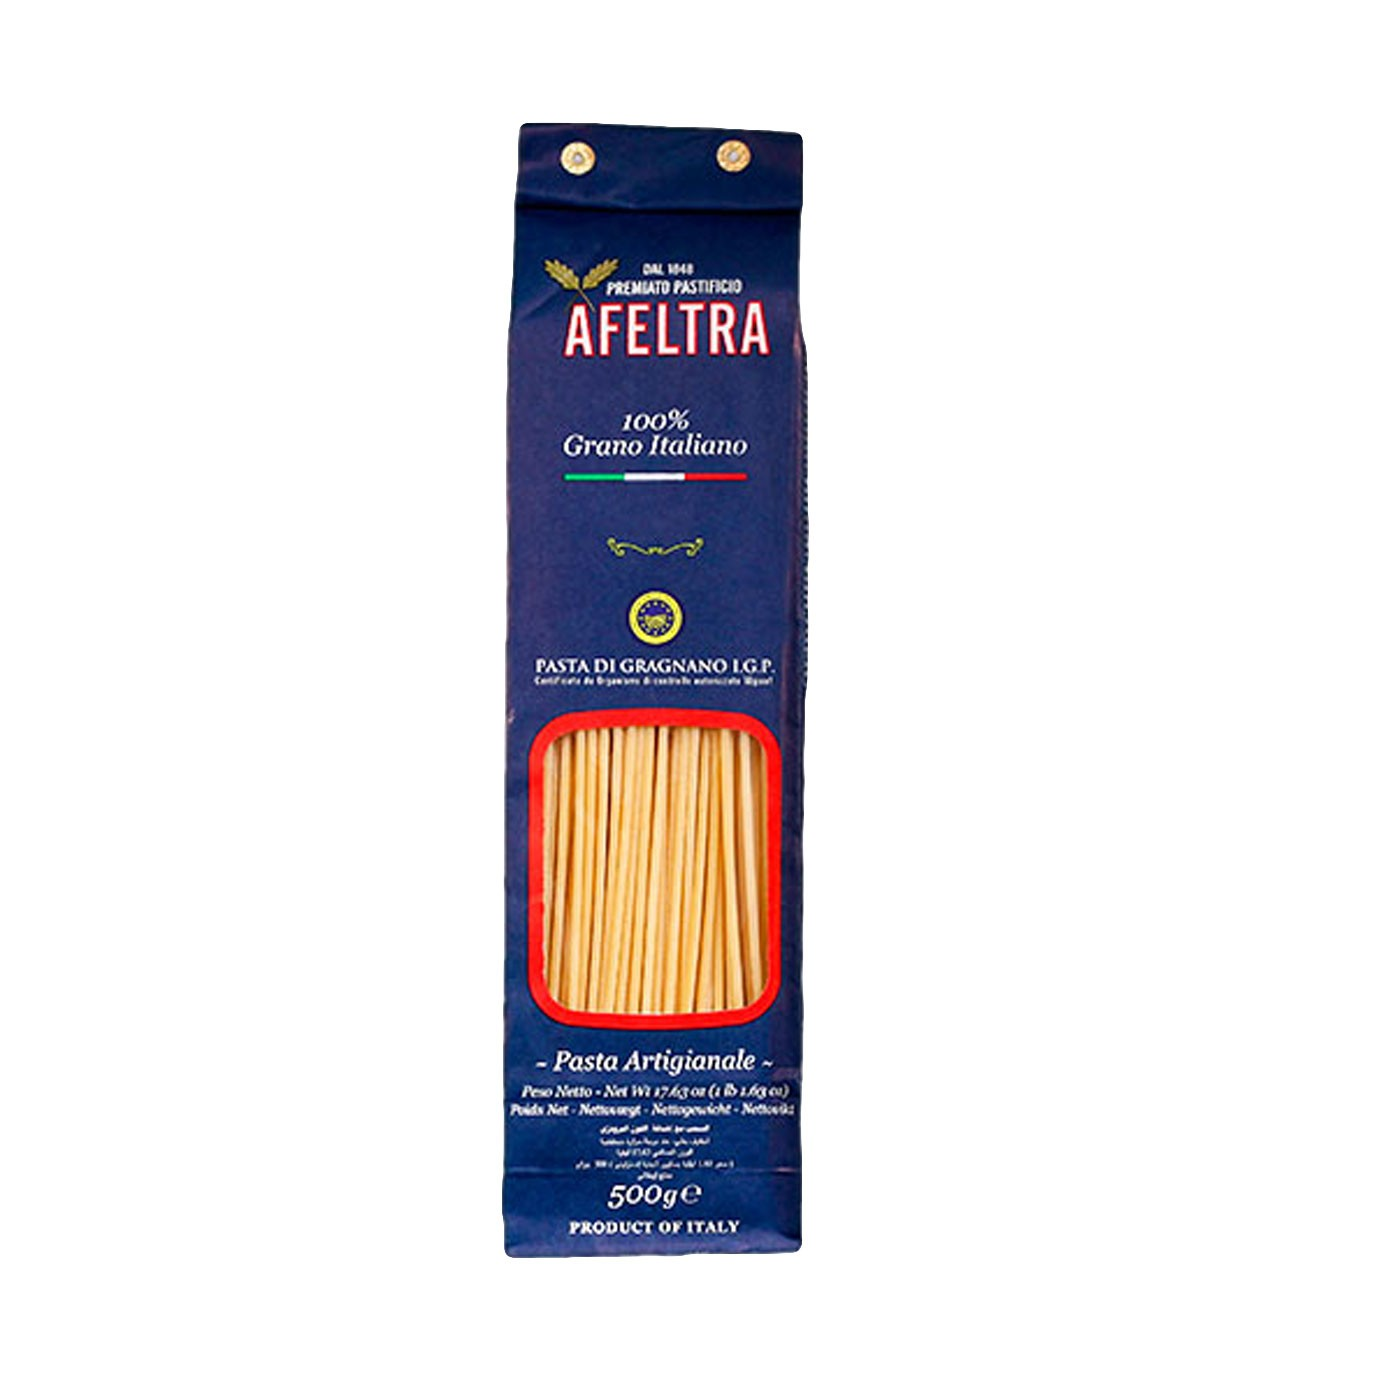 100% Italian Grain Bucatini 17.6 oz- Afeltra